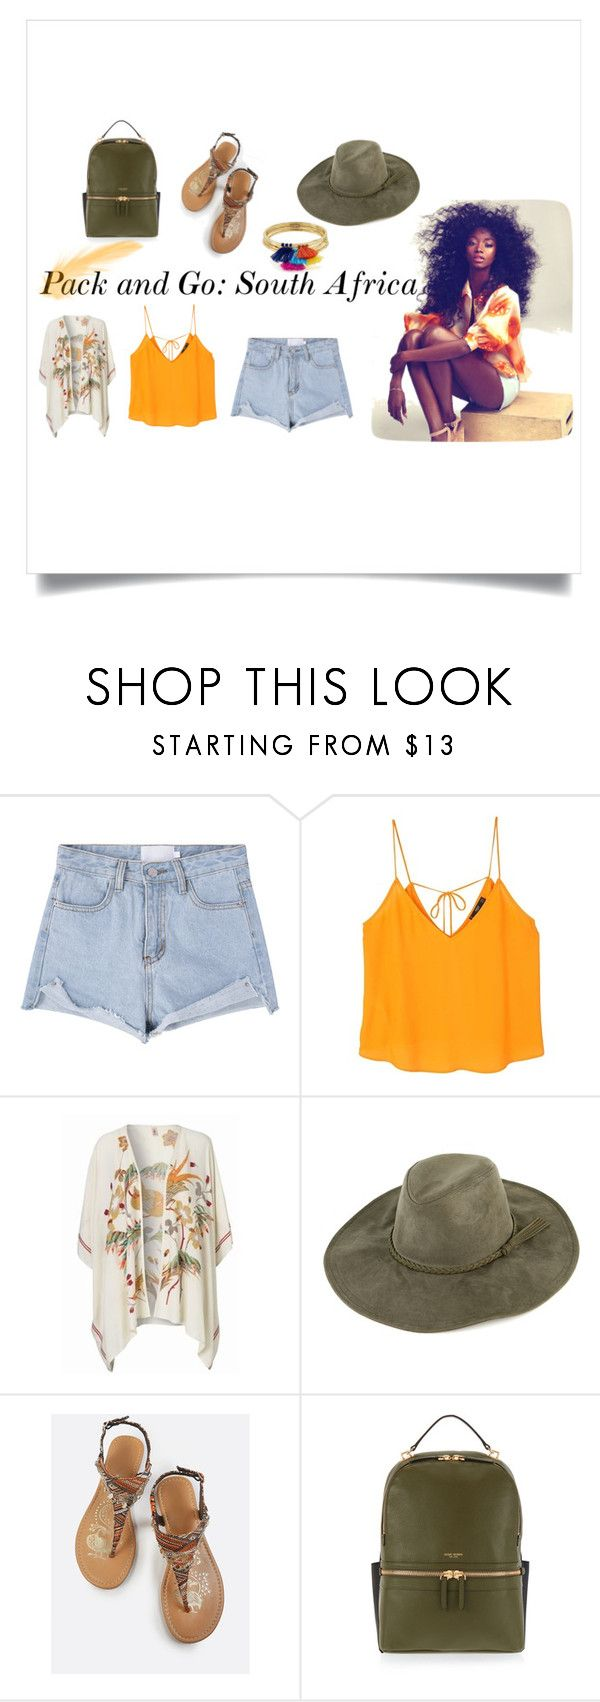 """pack and go: South Africa"" by mayagaleana on Polyvore featuring MANGO, BeckSöndergaard, Henri Bendel and Aqua"